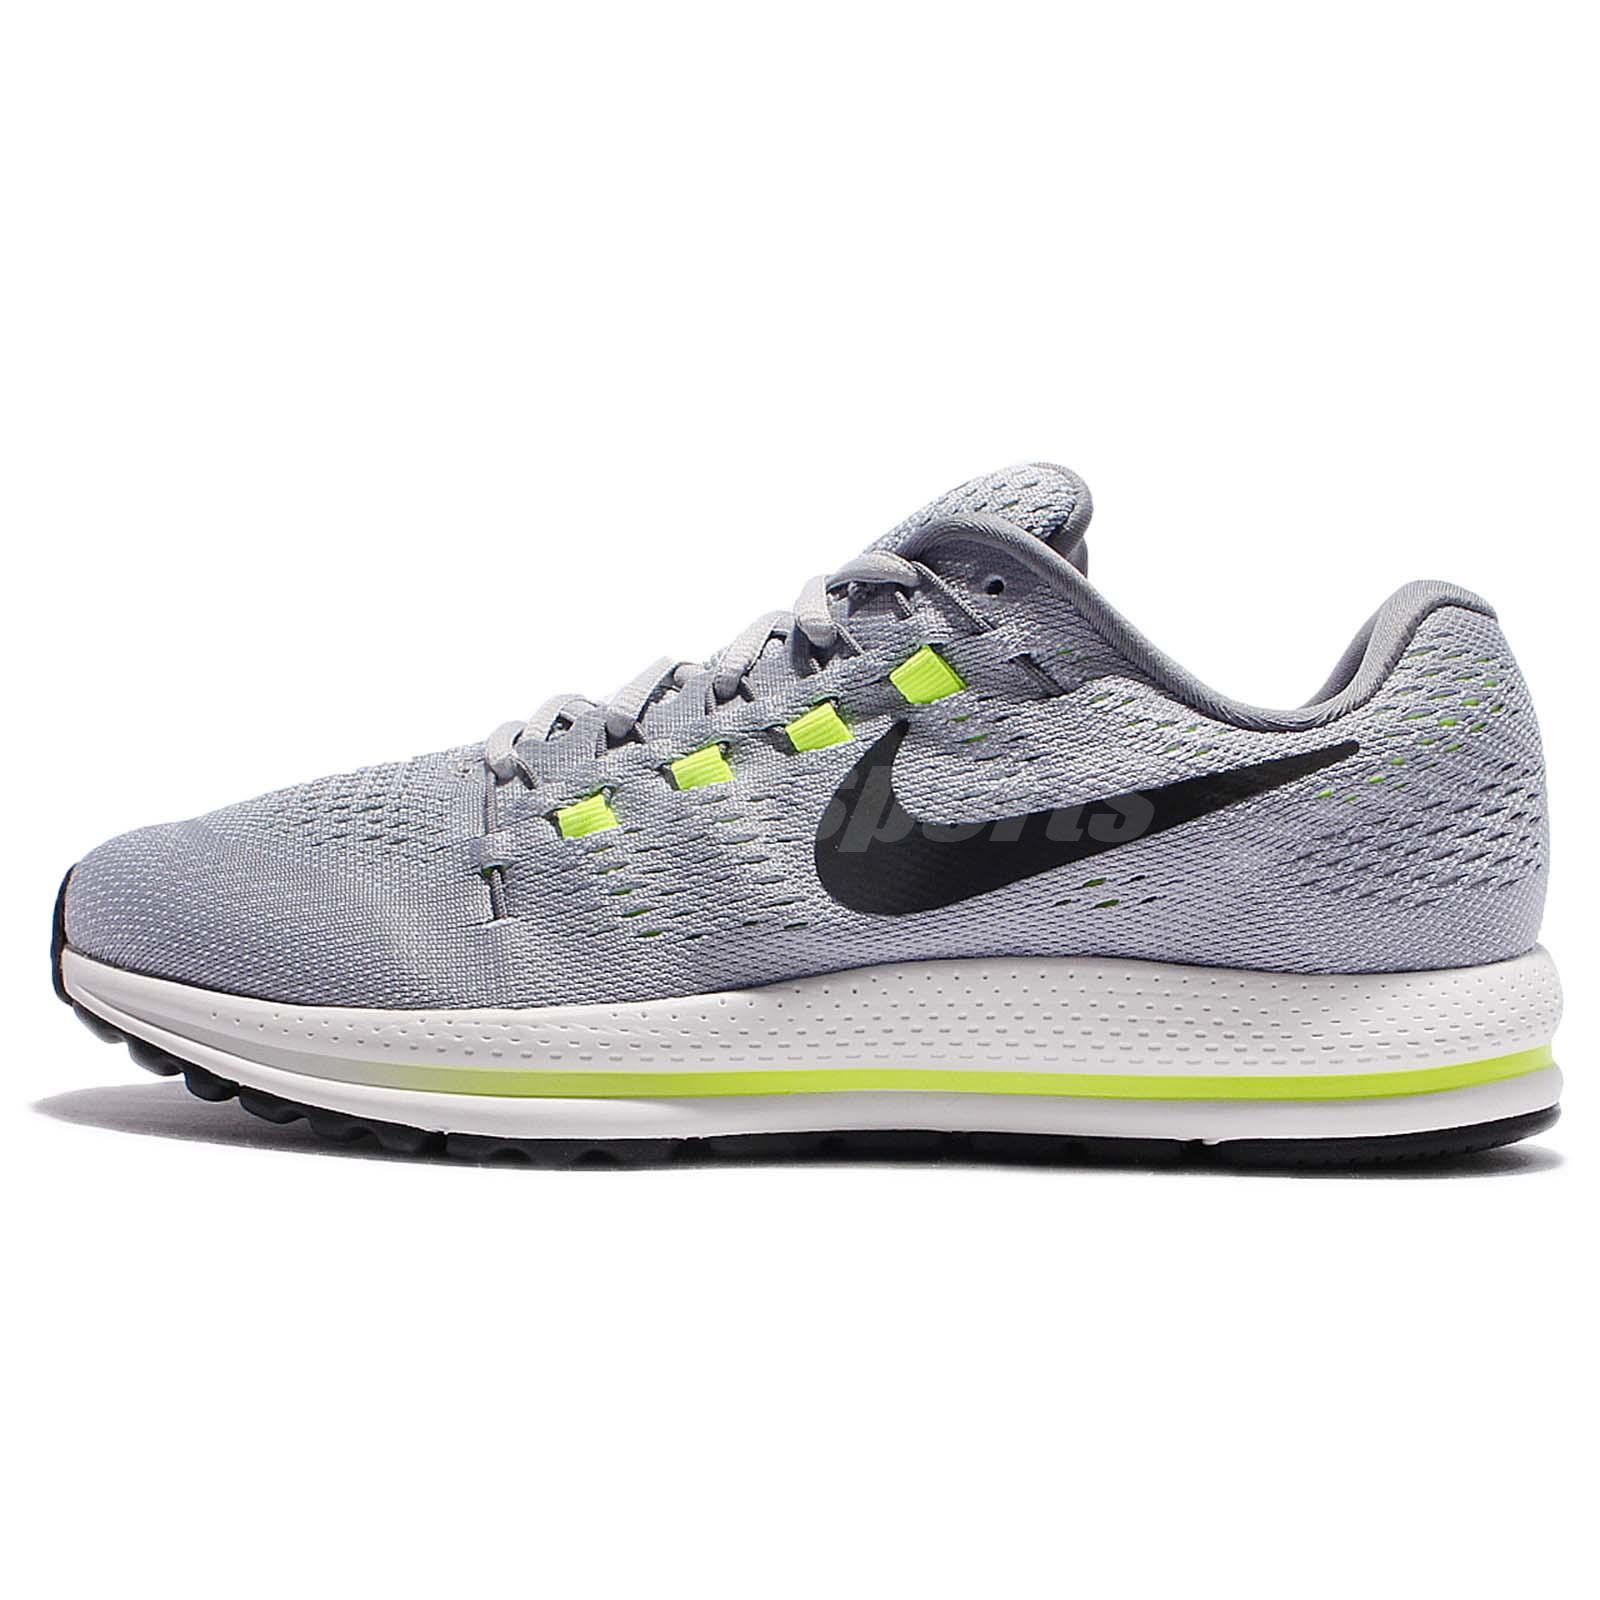 separation shoes ad74a e8d5c Nike Air Zoom Vomero 12 Grey Black Volt Men Running Shoes Sneakers 863762- 002